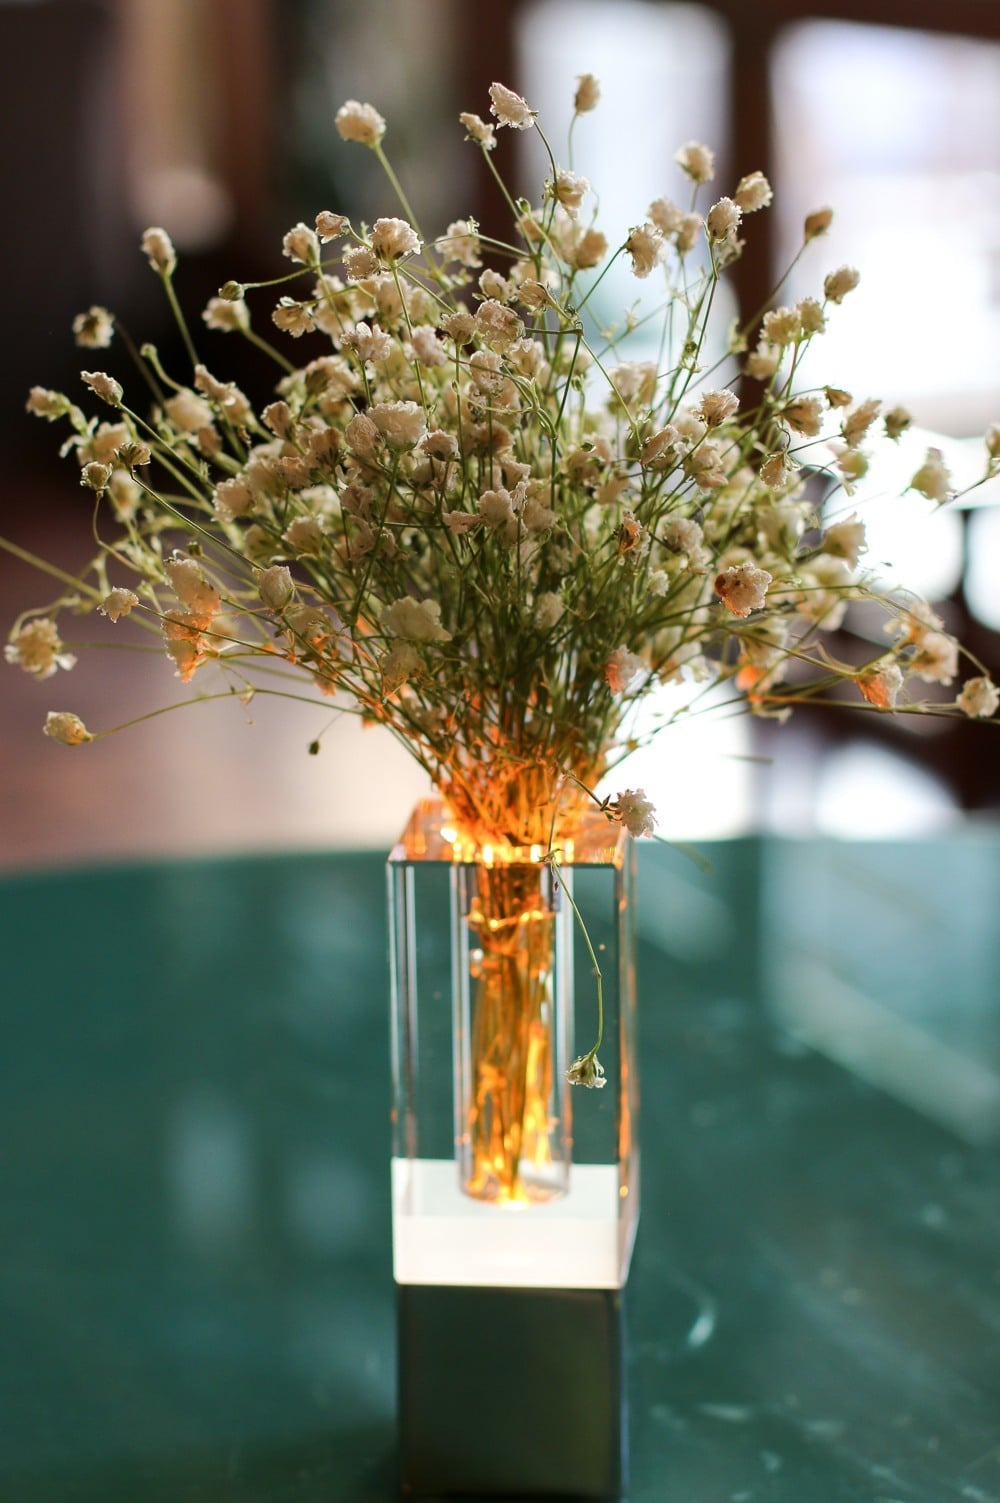 Loved this baby's breath flower arrangement at Peppino restaurant in Kota Kinabalu